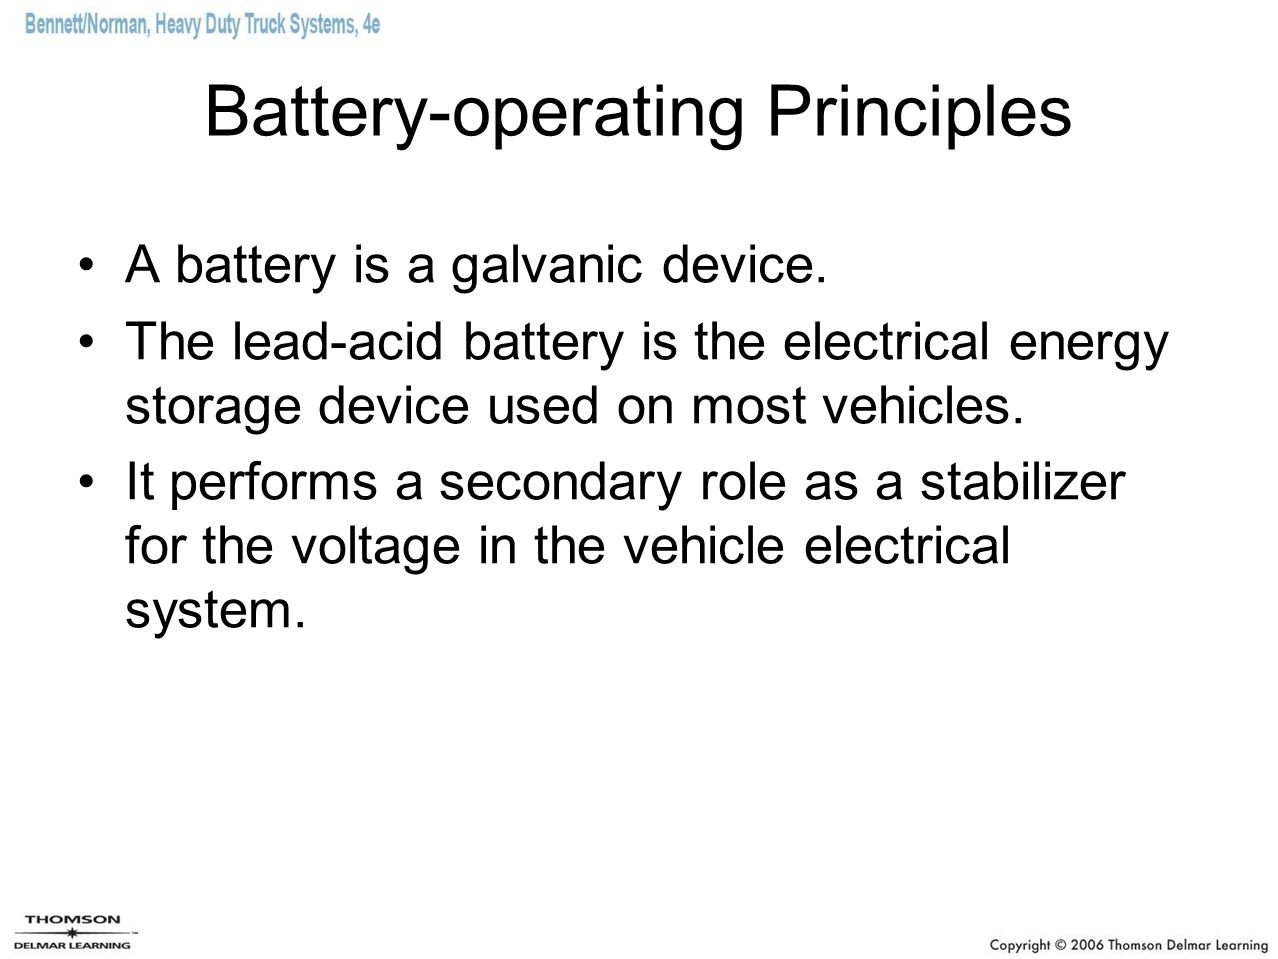 Battery-operating Principles